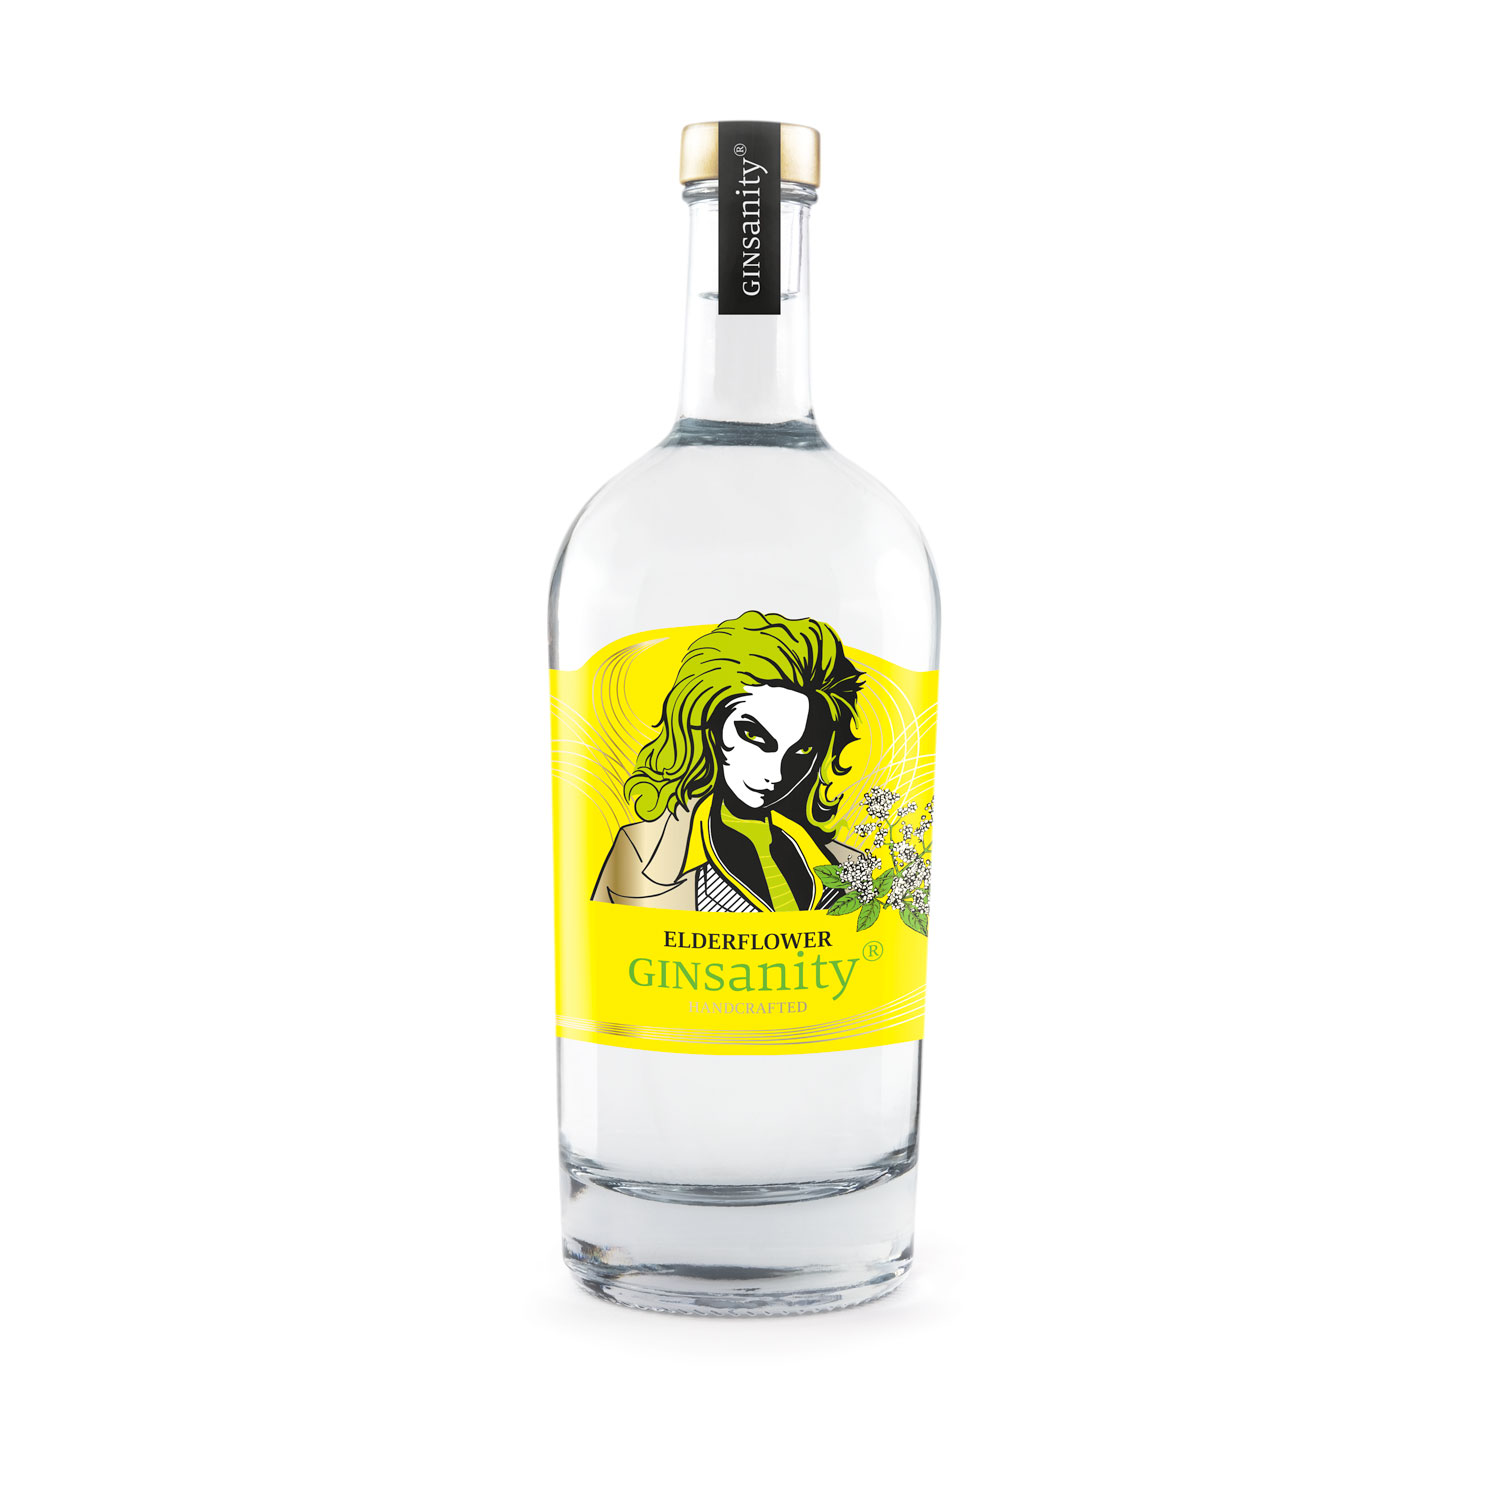 GINSANITY Elderflower